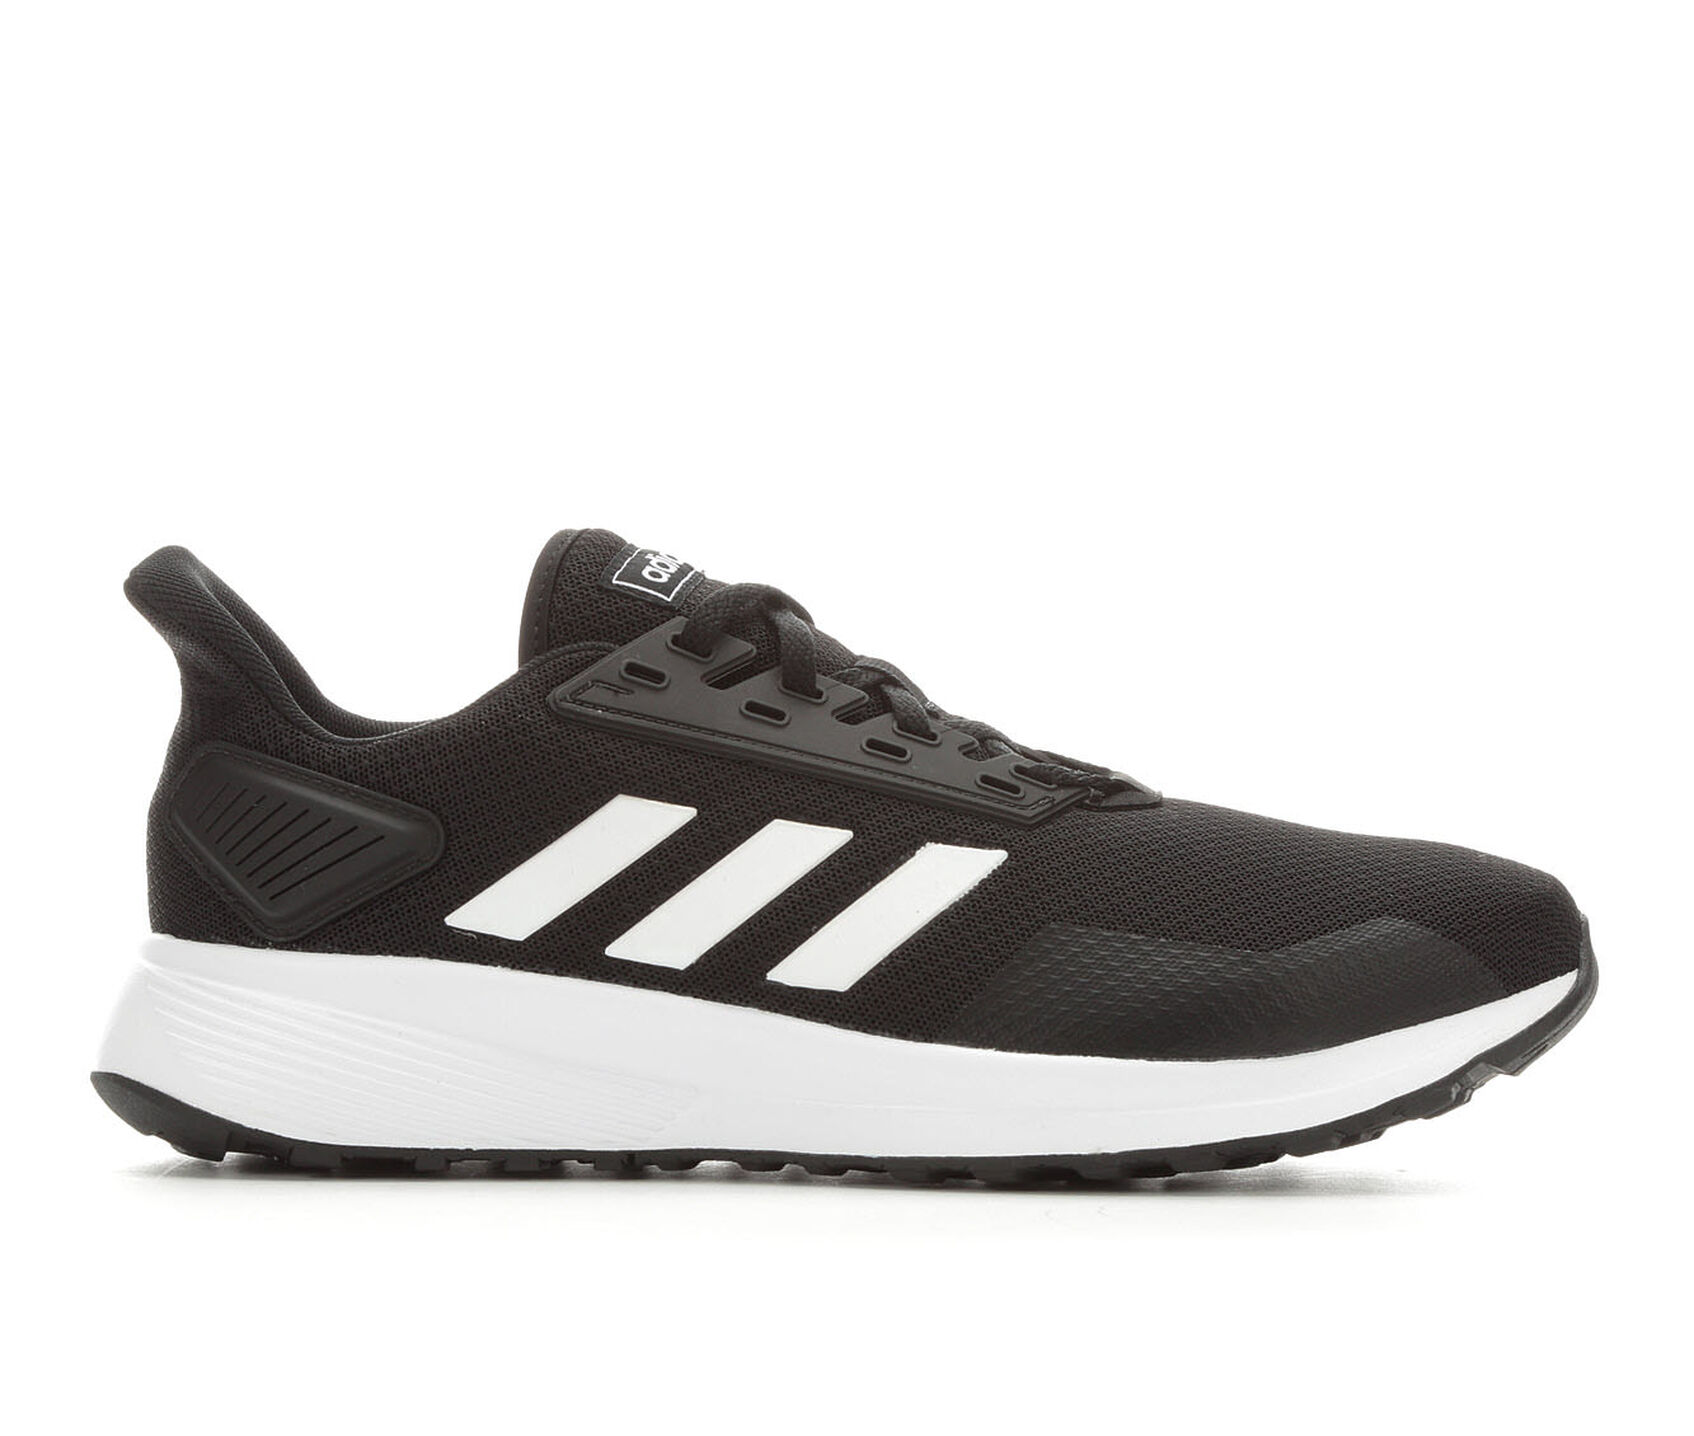 b17744e607d ... Adidas Duramo 9 Running Shoes. Previous